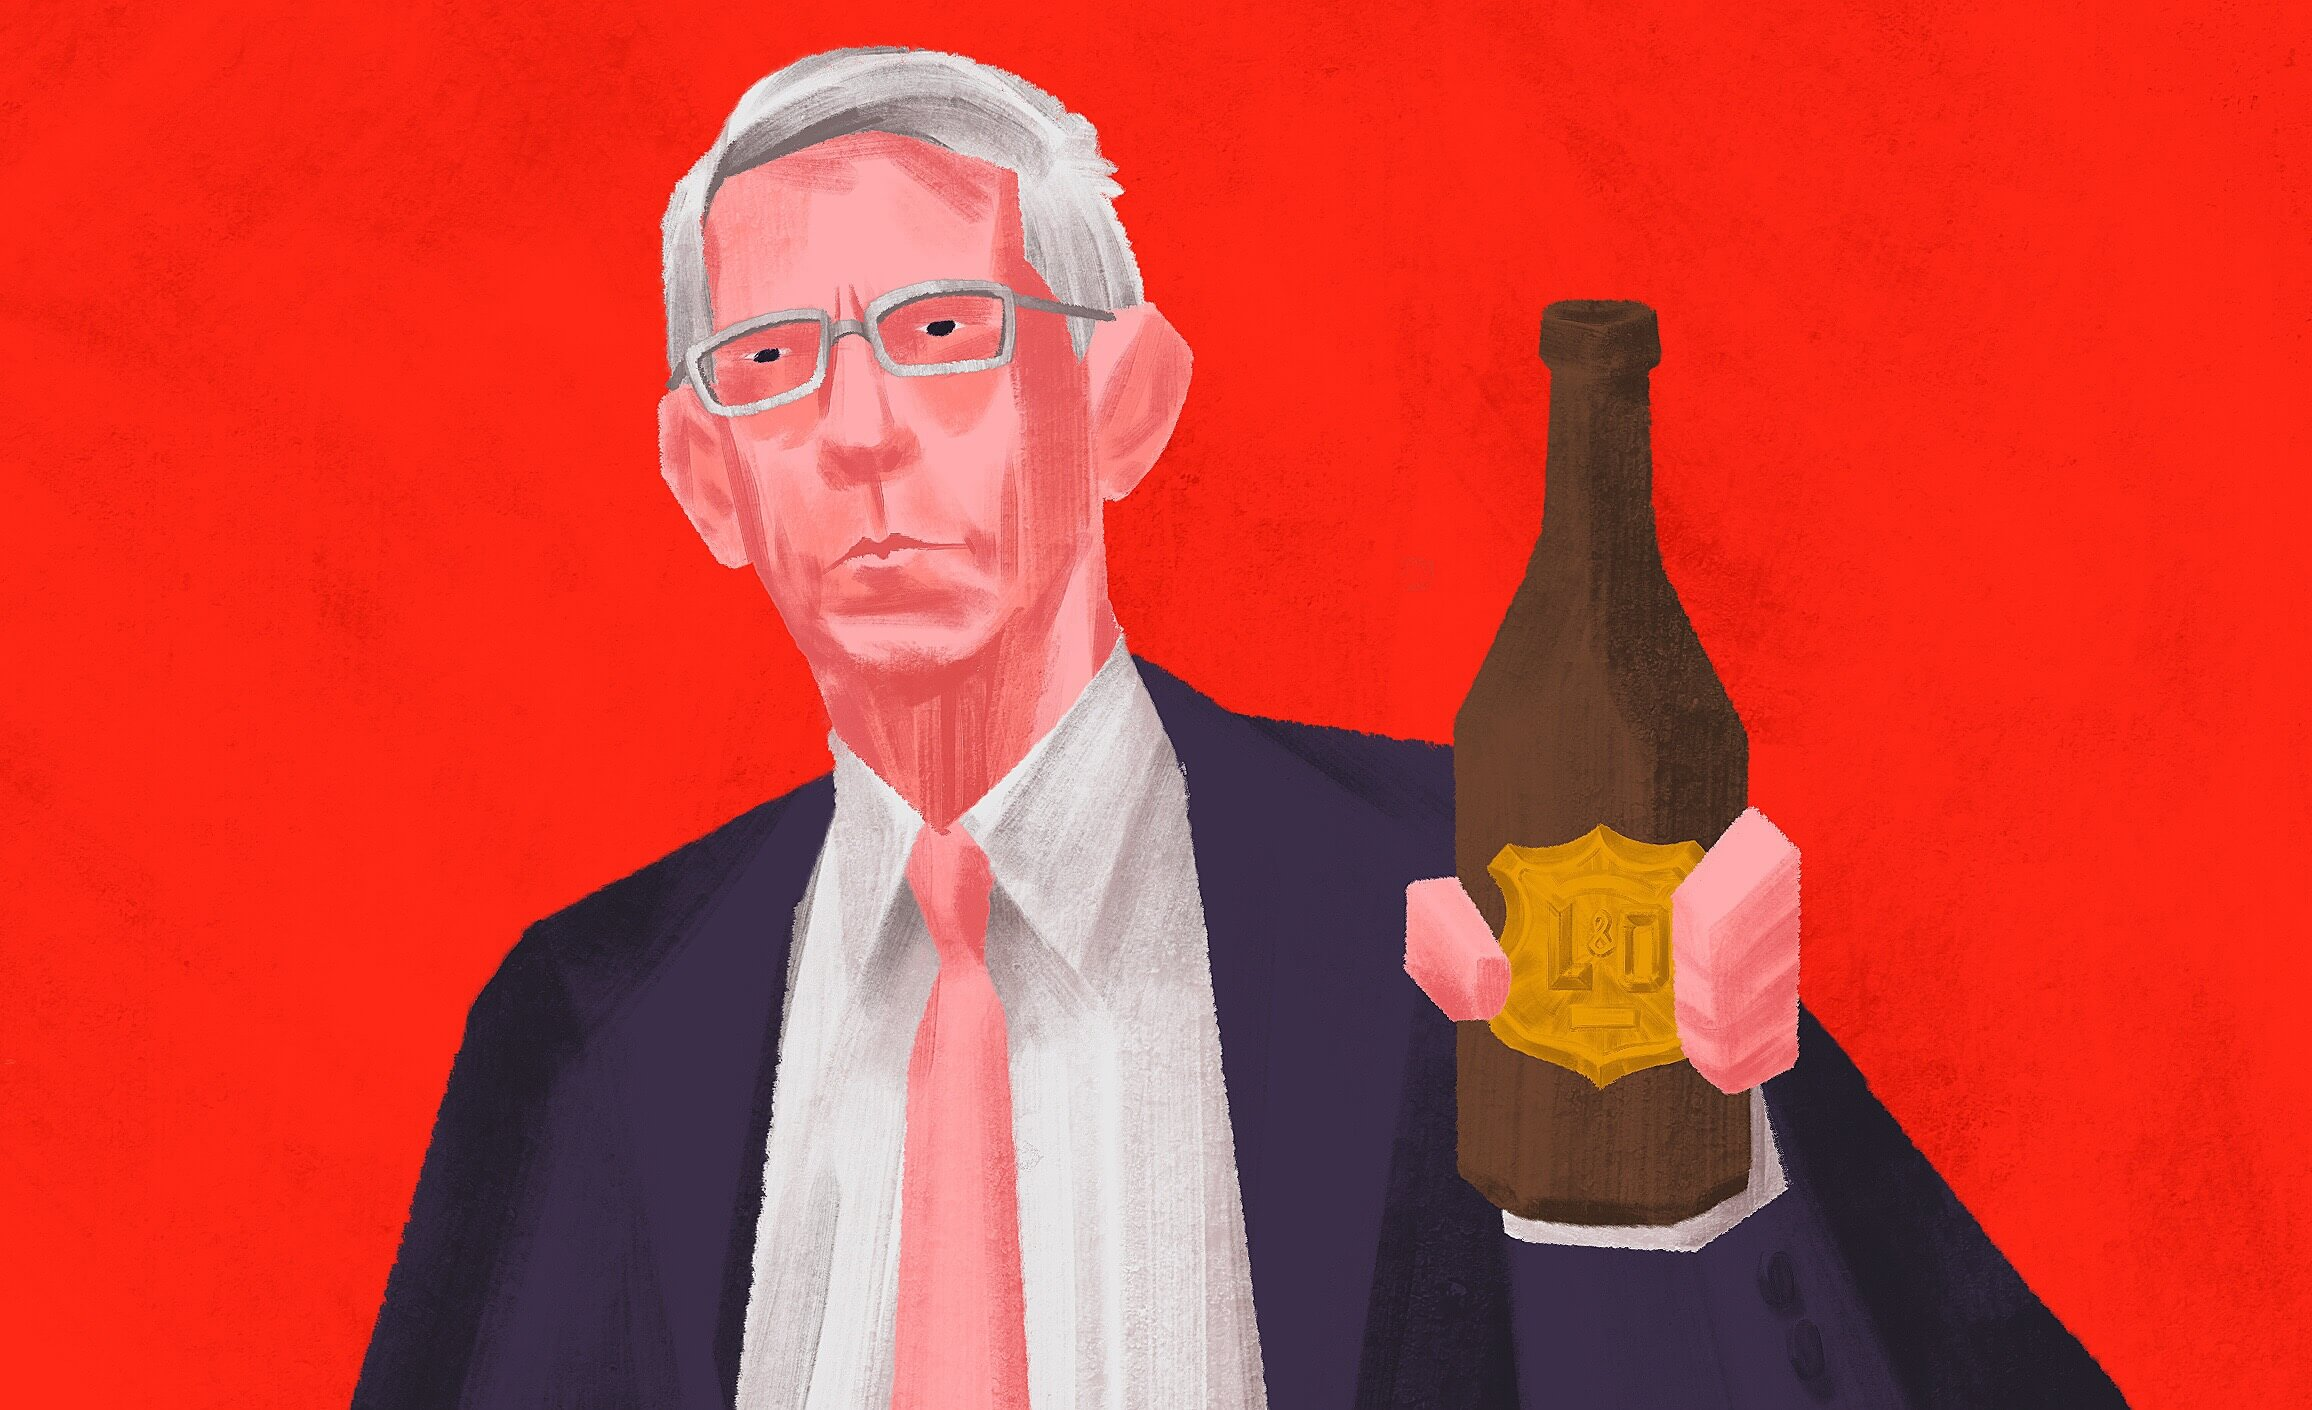 Law & Order's Detective Munch Once Had a Brewpub